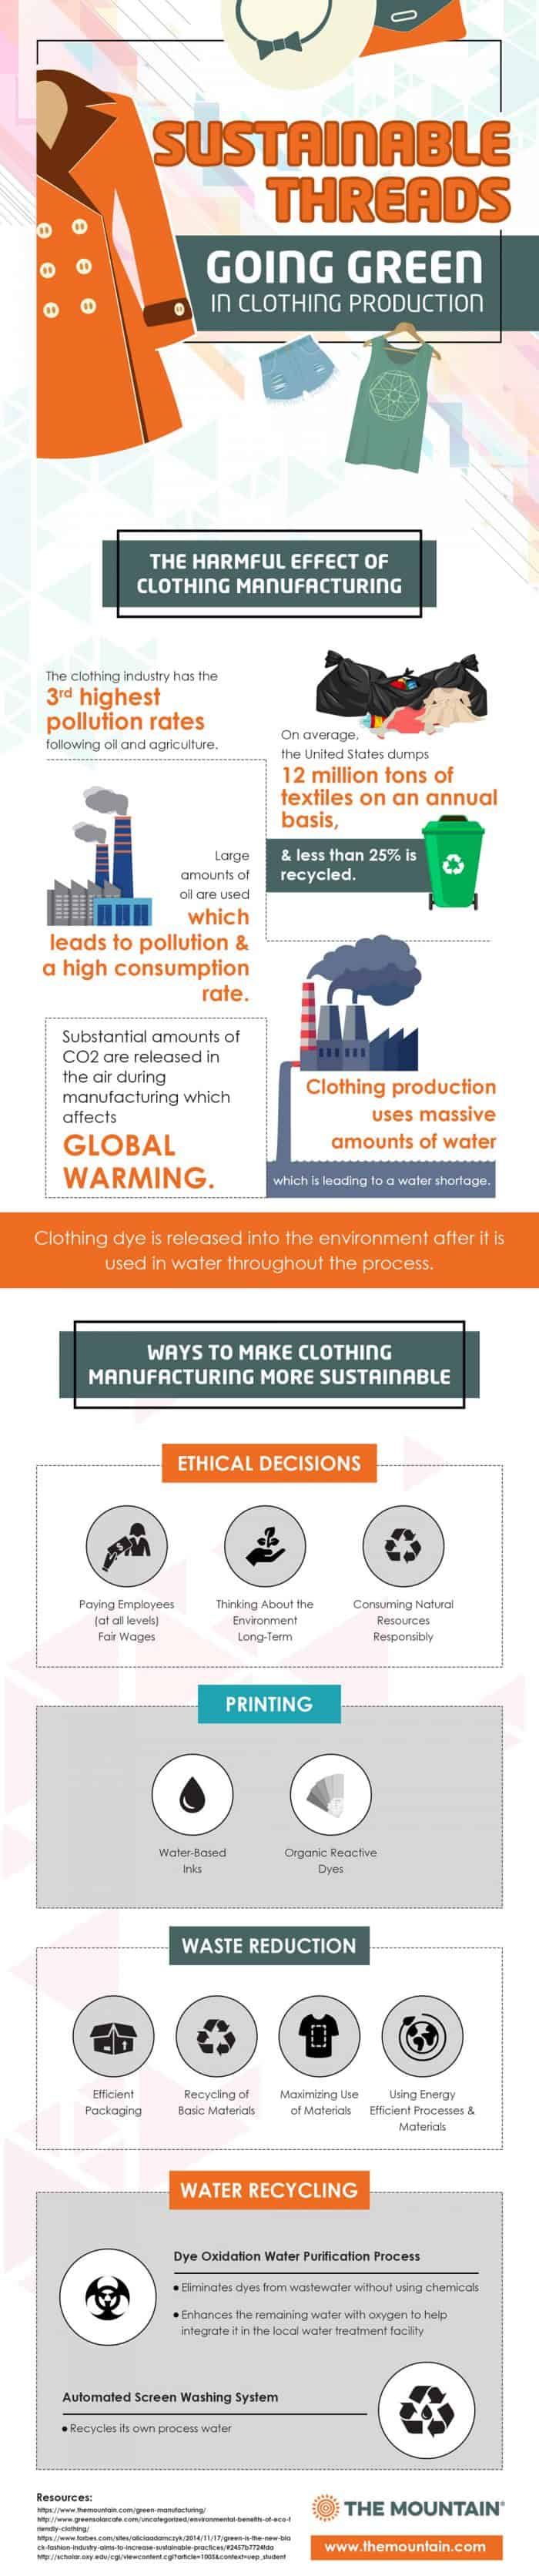 showing the environmental impact that clothing production has